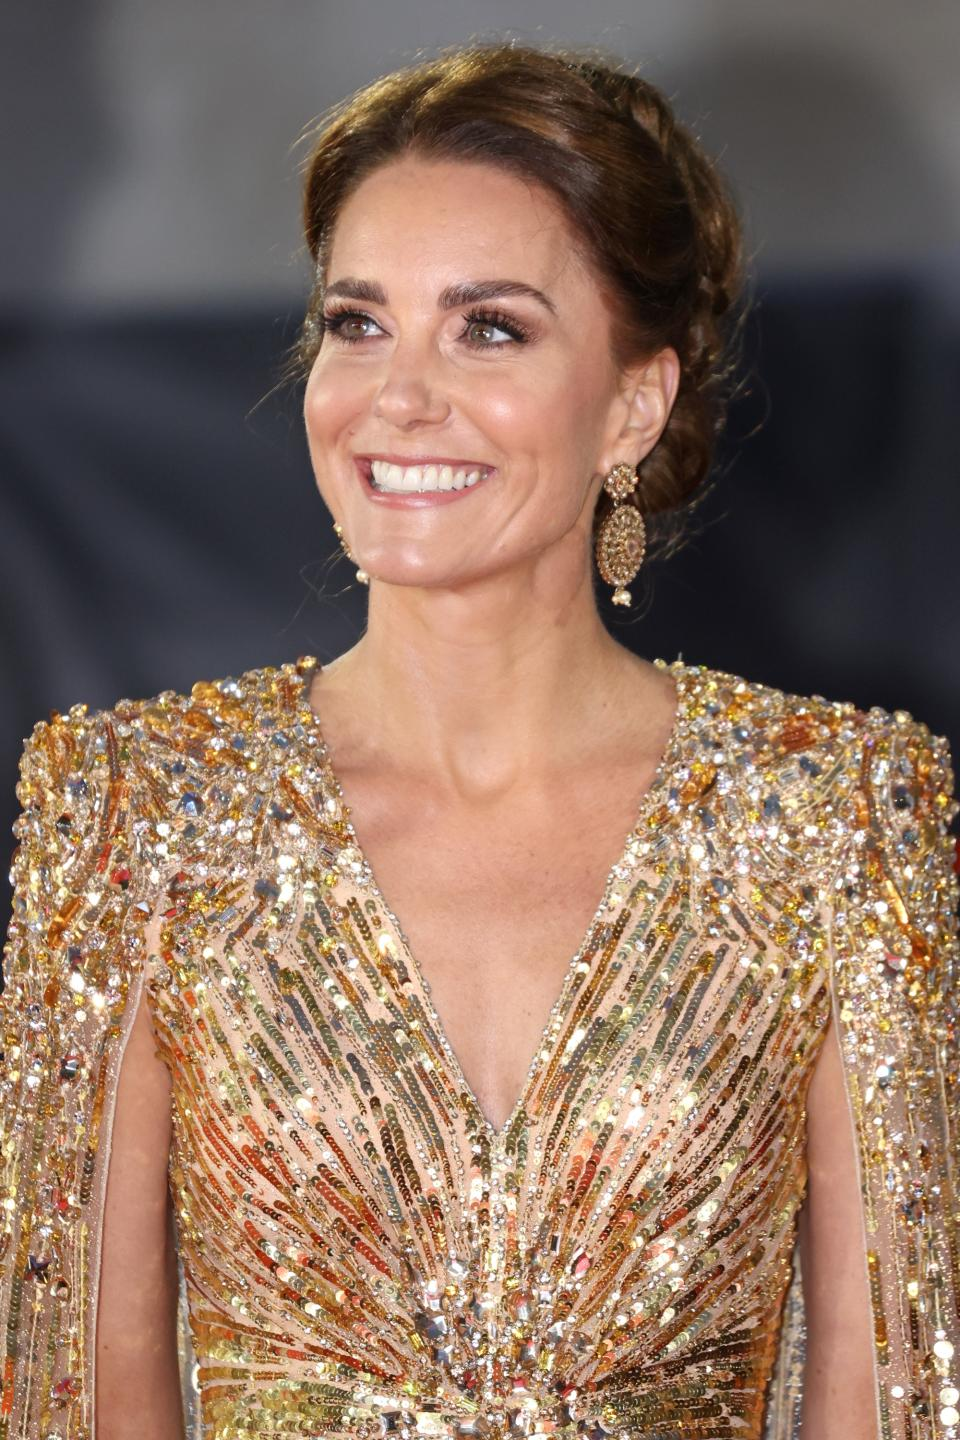 Kate Middleton dazzled at the London premiere of